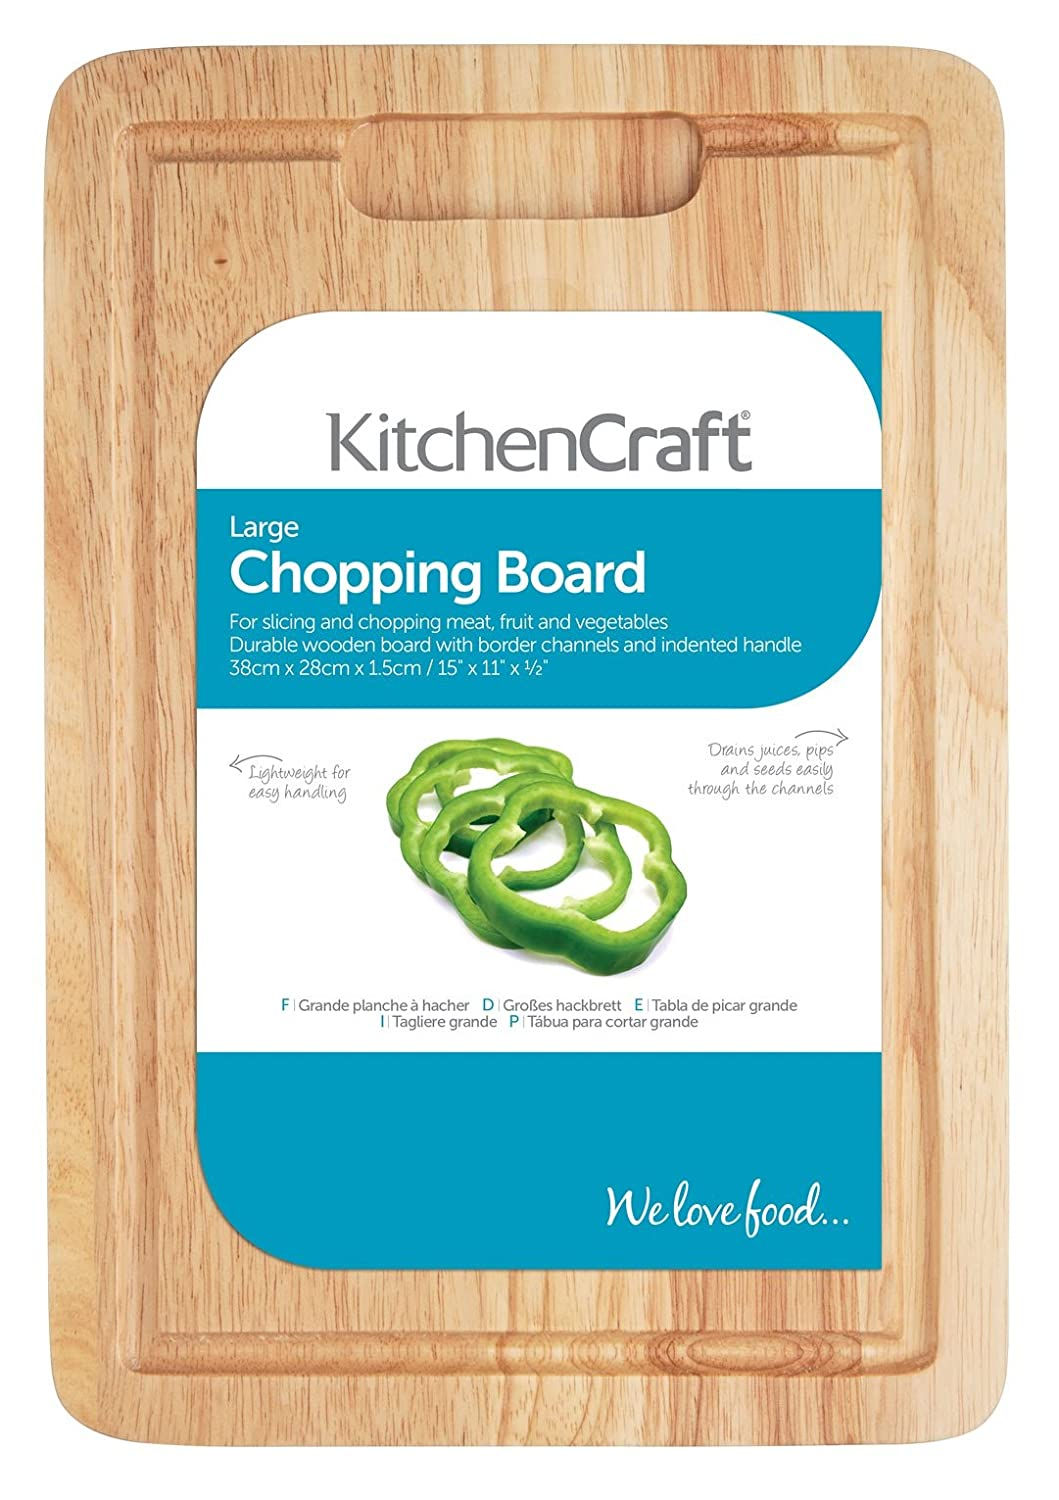 KitchenCraft Large Rectangular Wooden Chopping Board 38 x 28 x 1.5cm ...